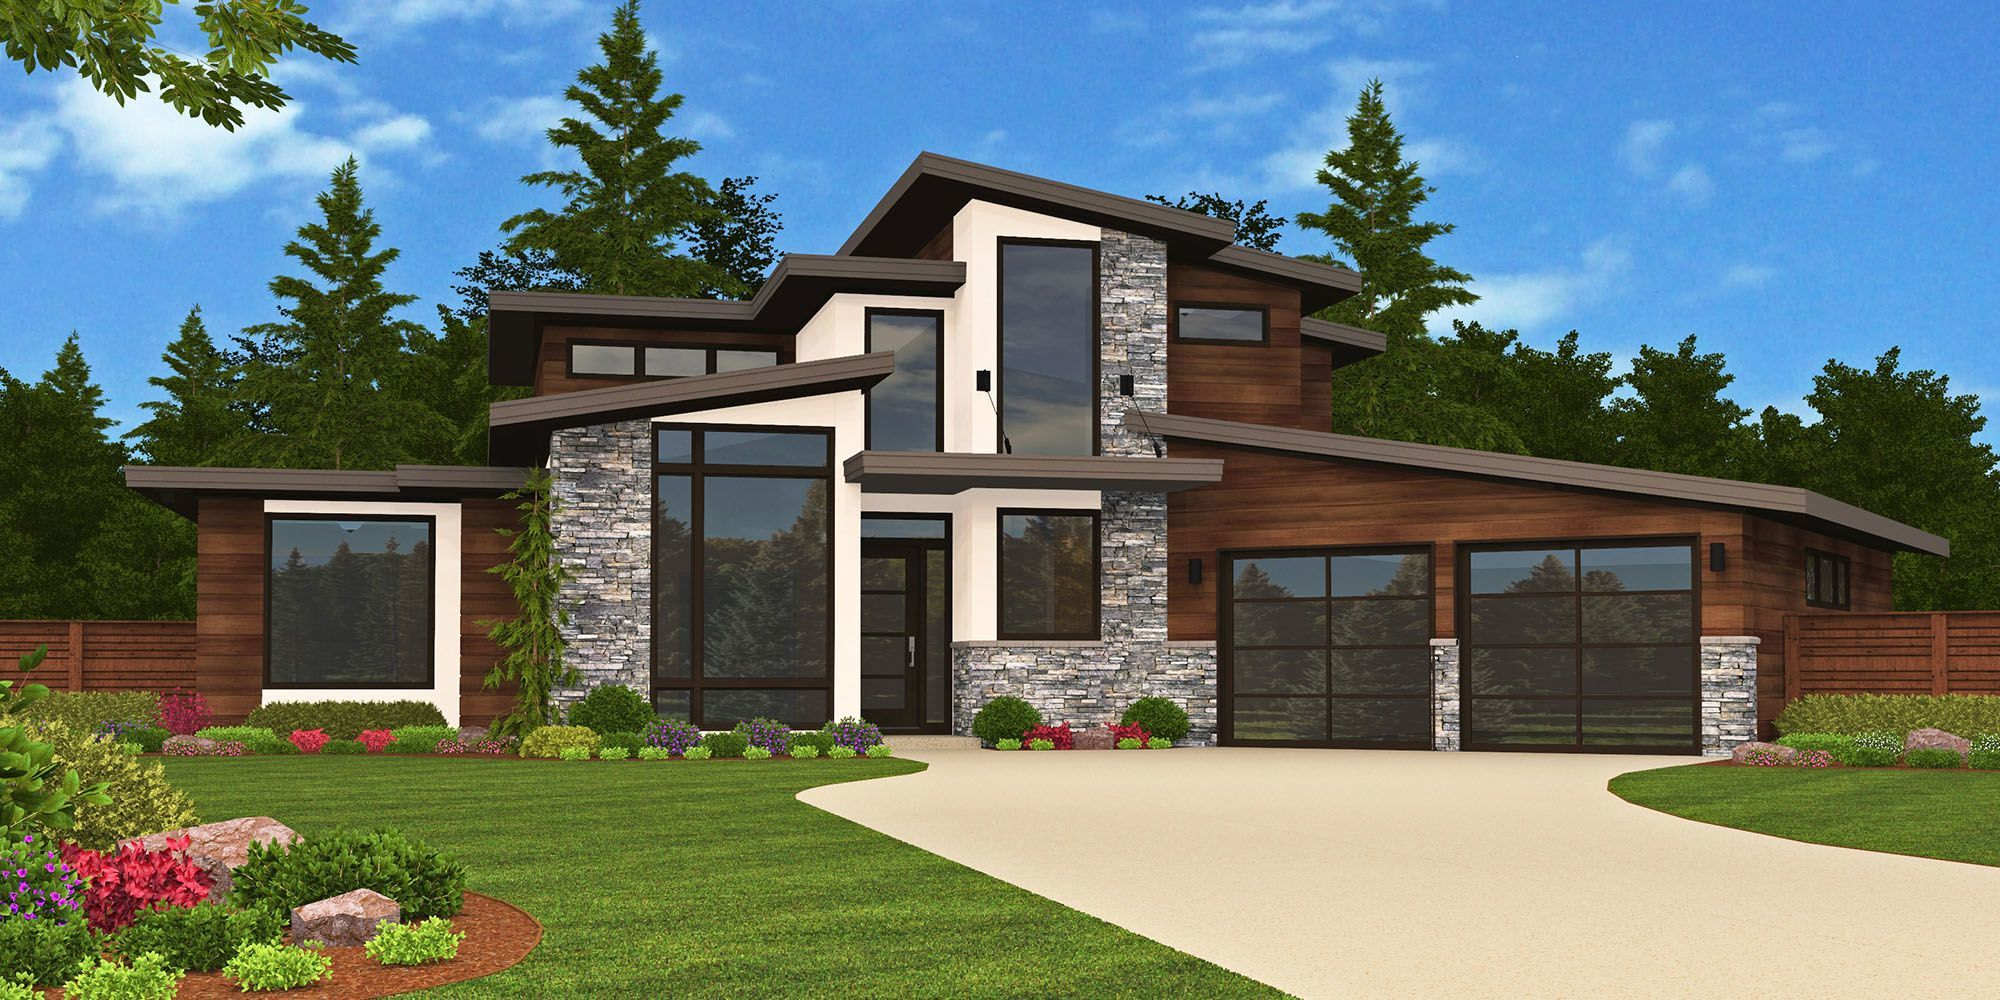 Sting x 16a house plan modern house plans for Mordern house